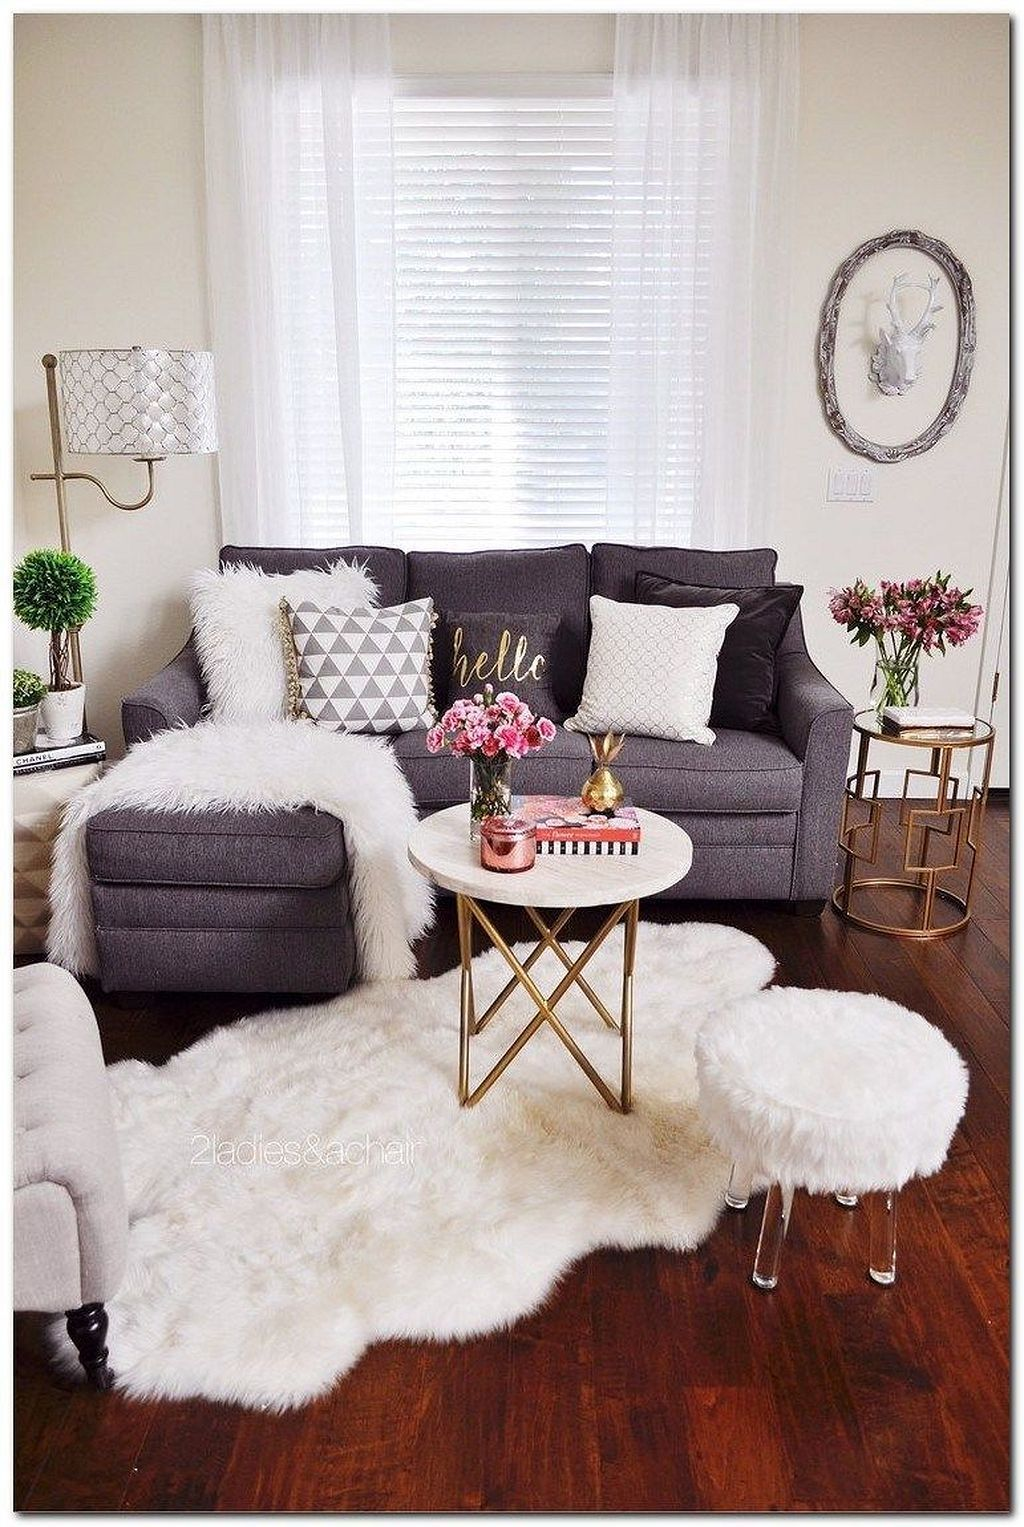 25 Beautiful Living Room Design Ideas on a Budget | Living Room ...